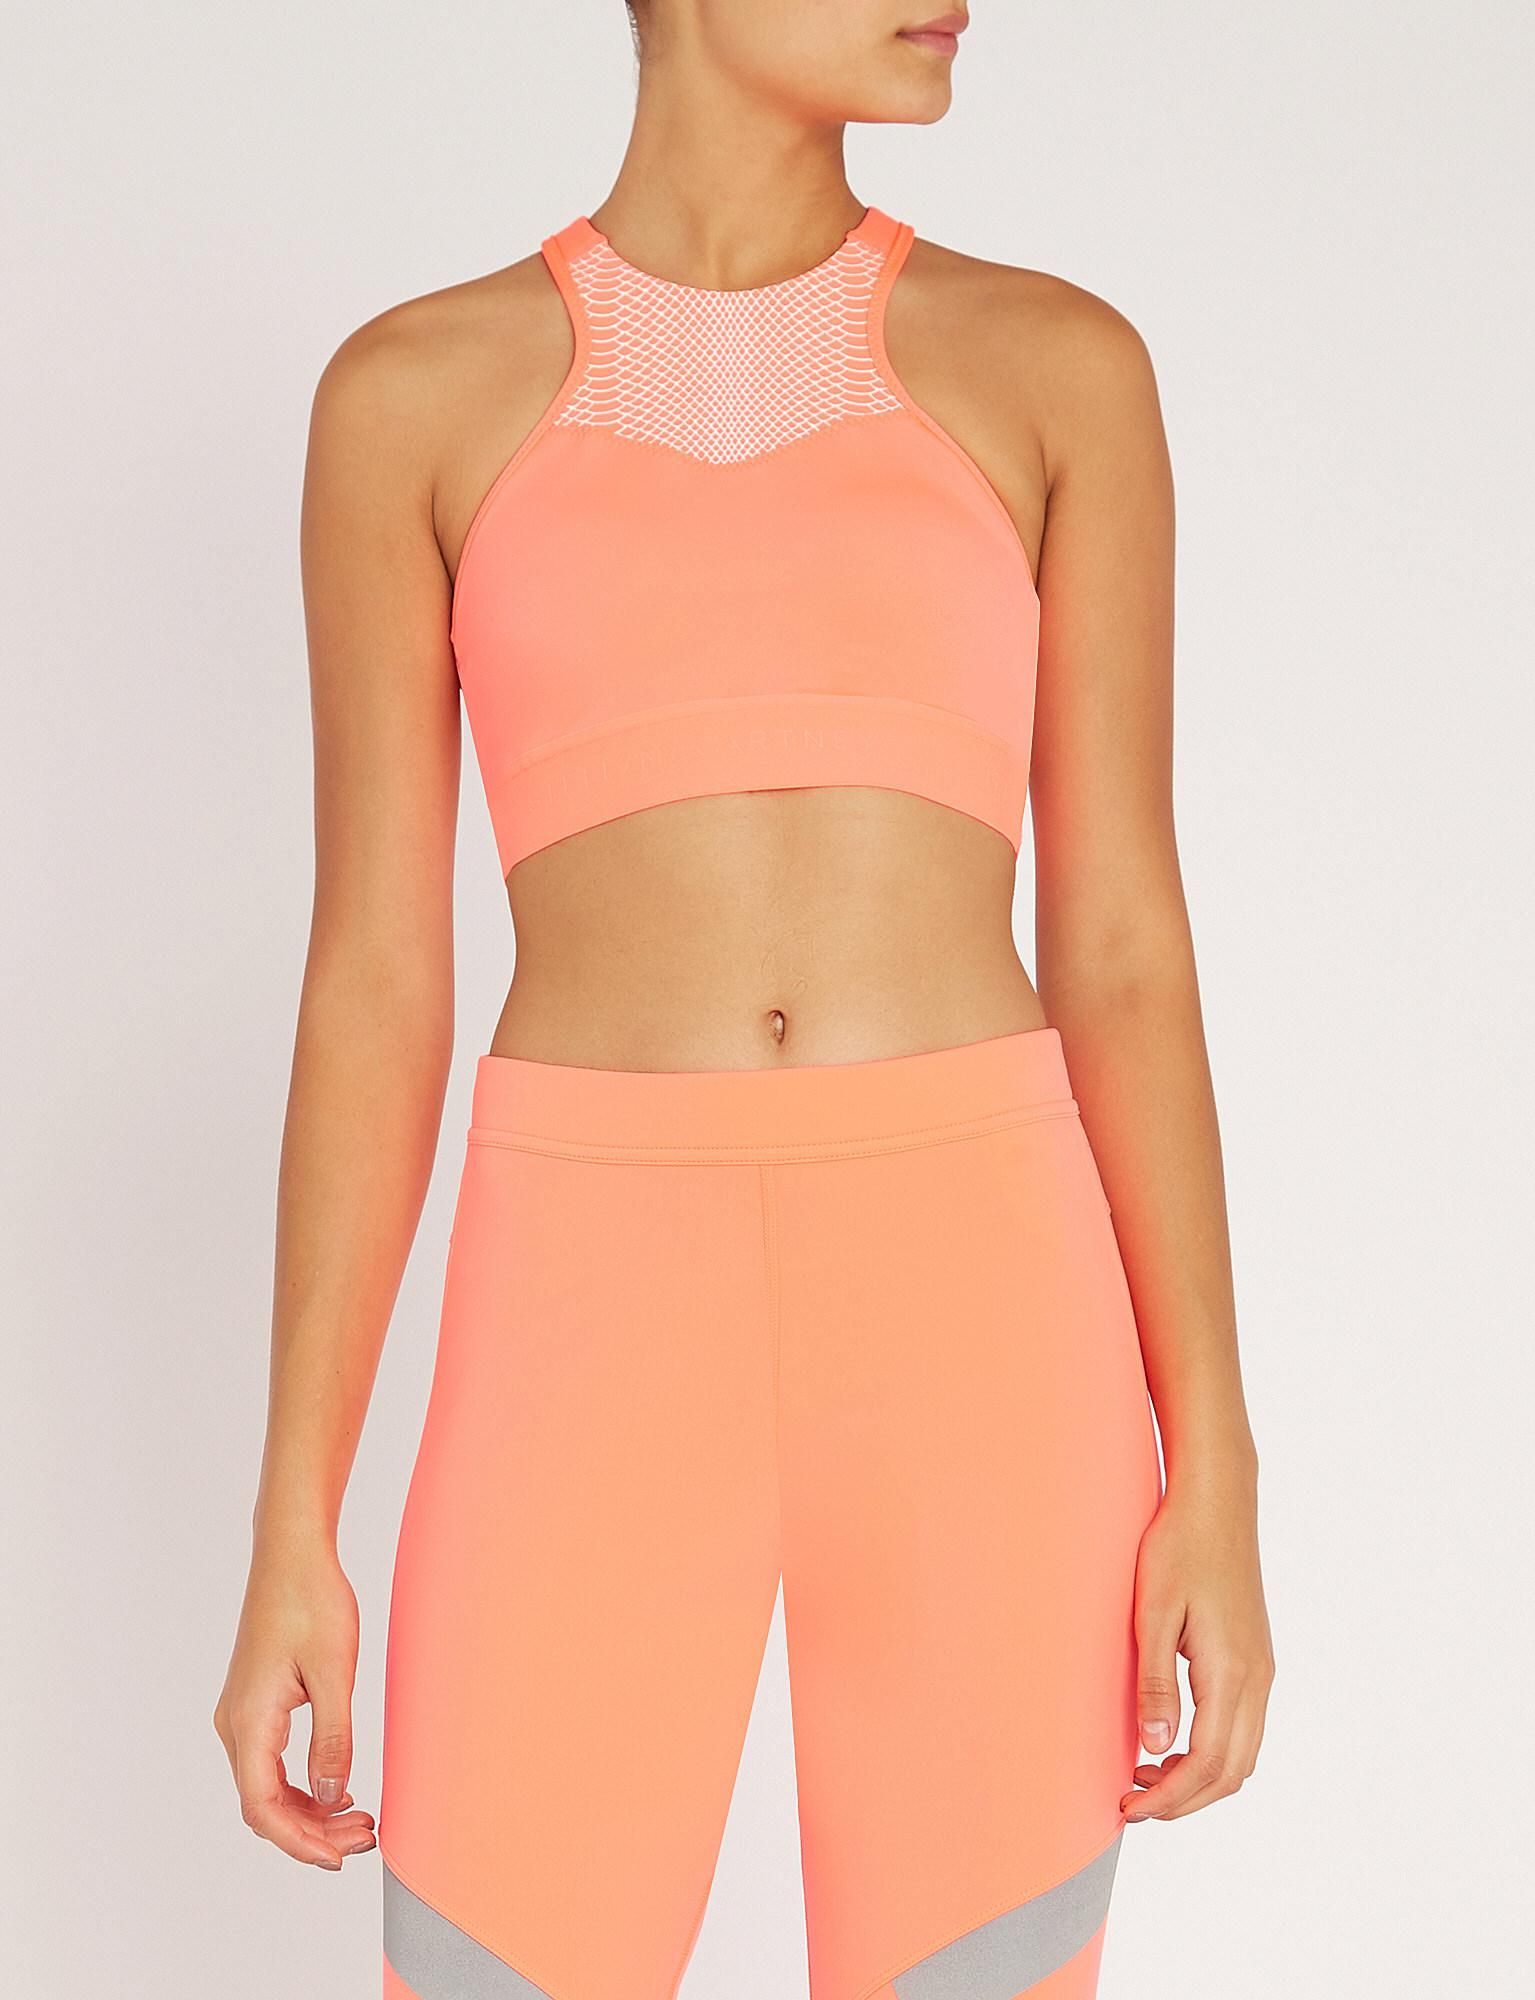 7babd6f621f29 adidas By Stella McCartney. Women s Orange Hiit Medium Support Stretch-jersey  Sports Bra